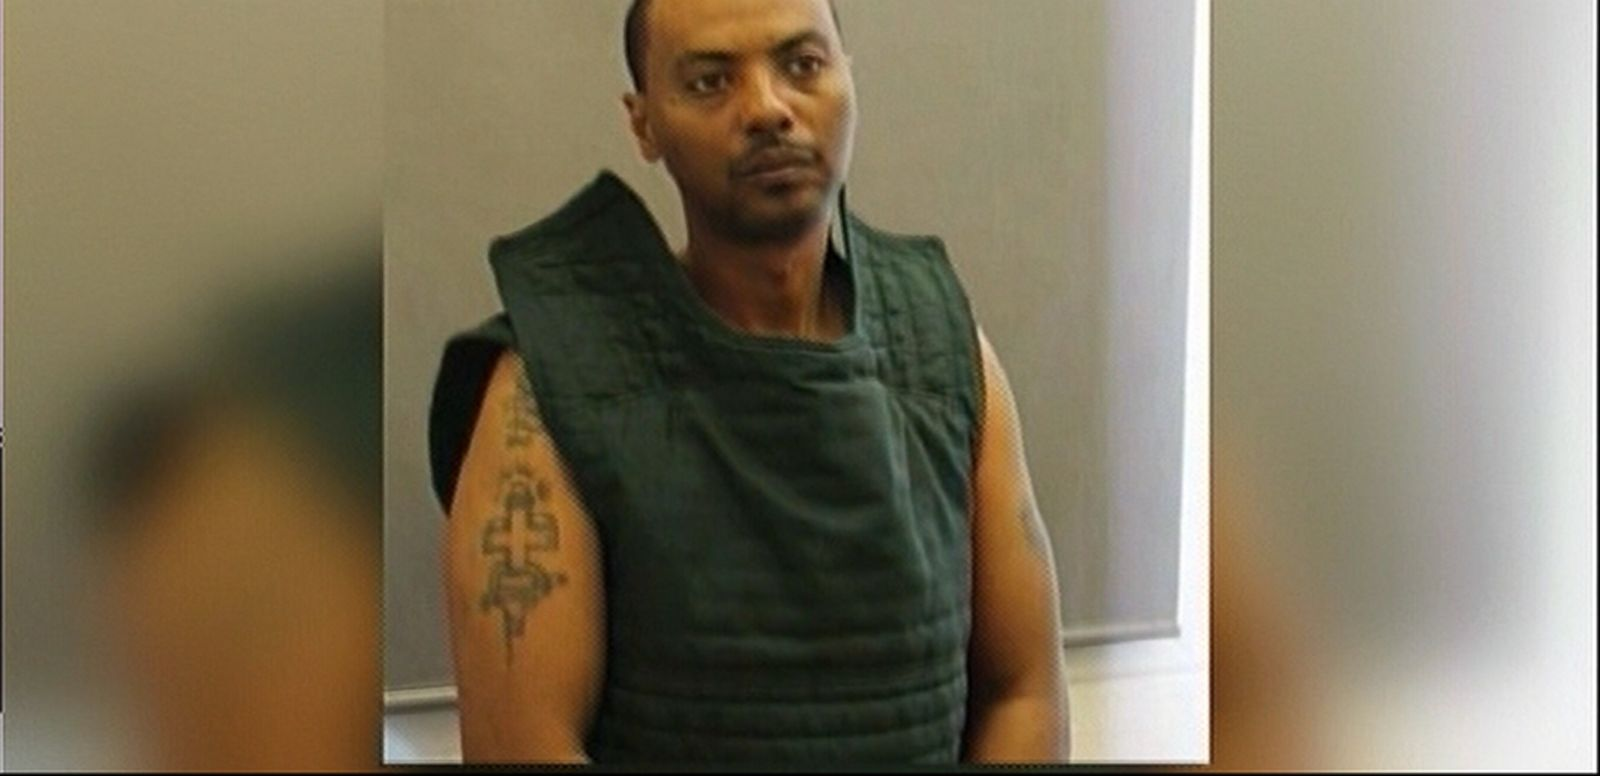 VIDEO: Wossen Assaye was arrested in Washington, D.C. after a massive manhunt following his escape from a Virginia hospital this morning.